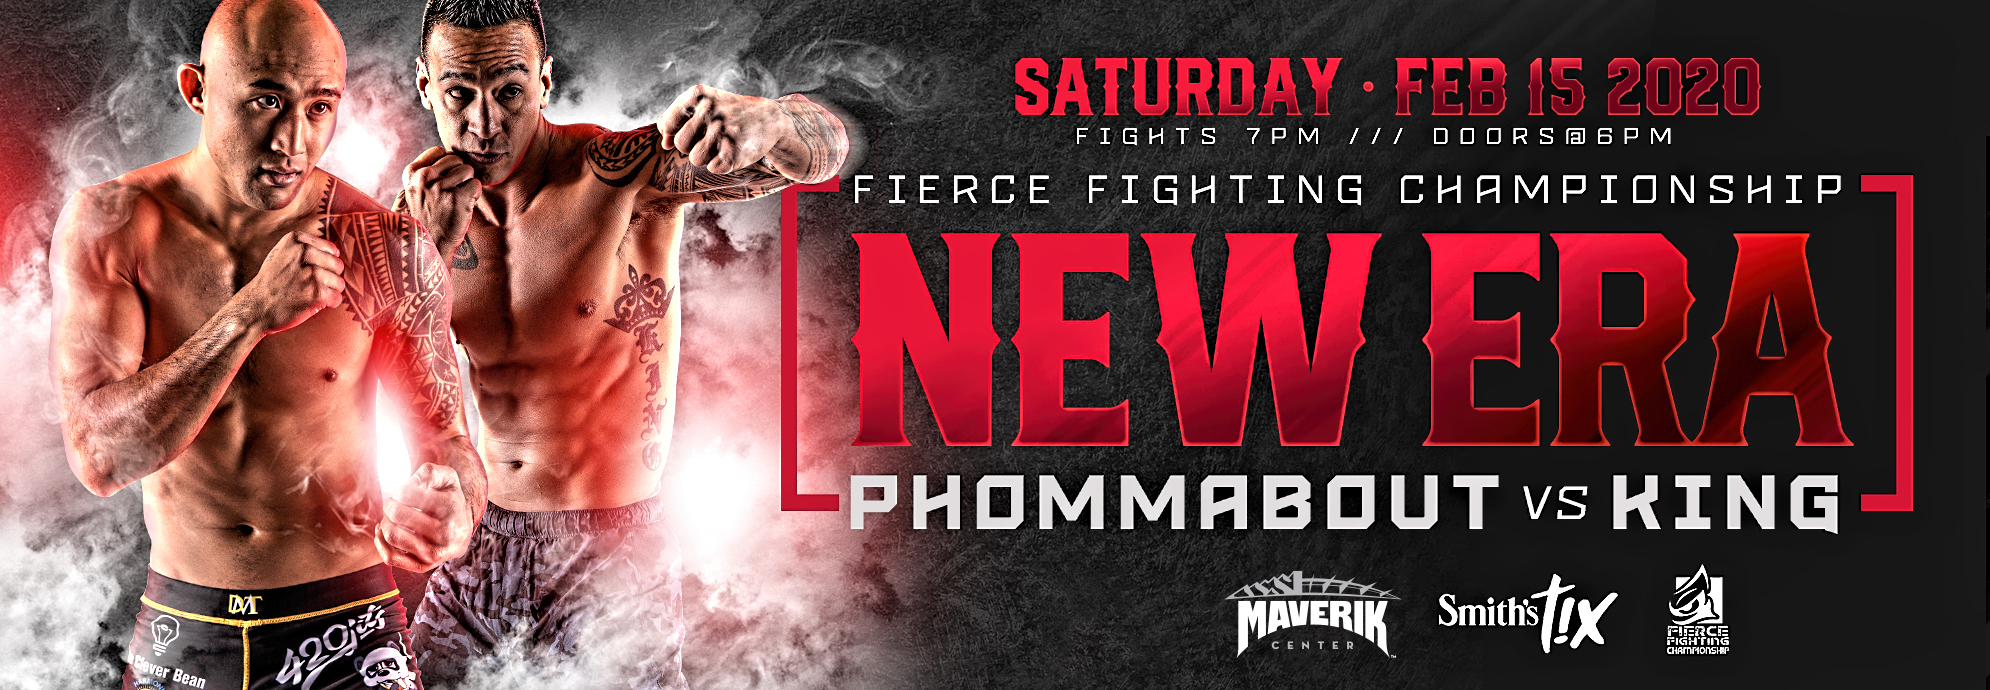 Fierce Fighting Championship: New Era